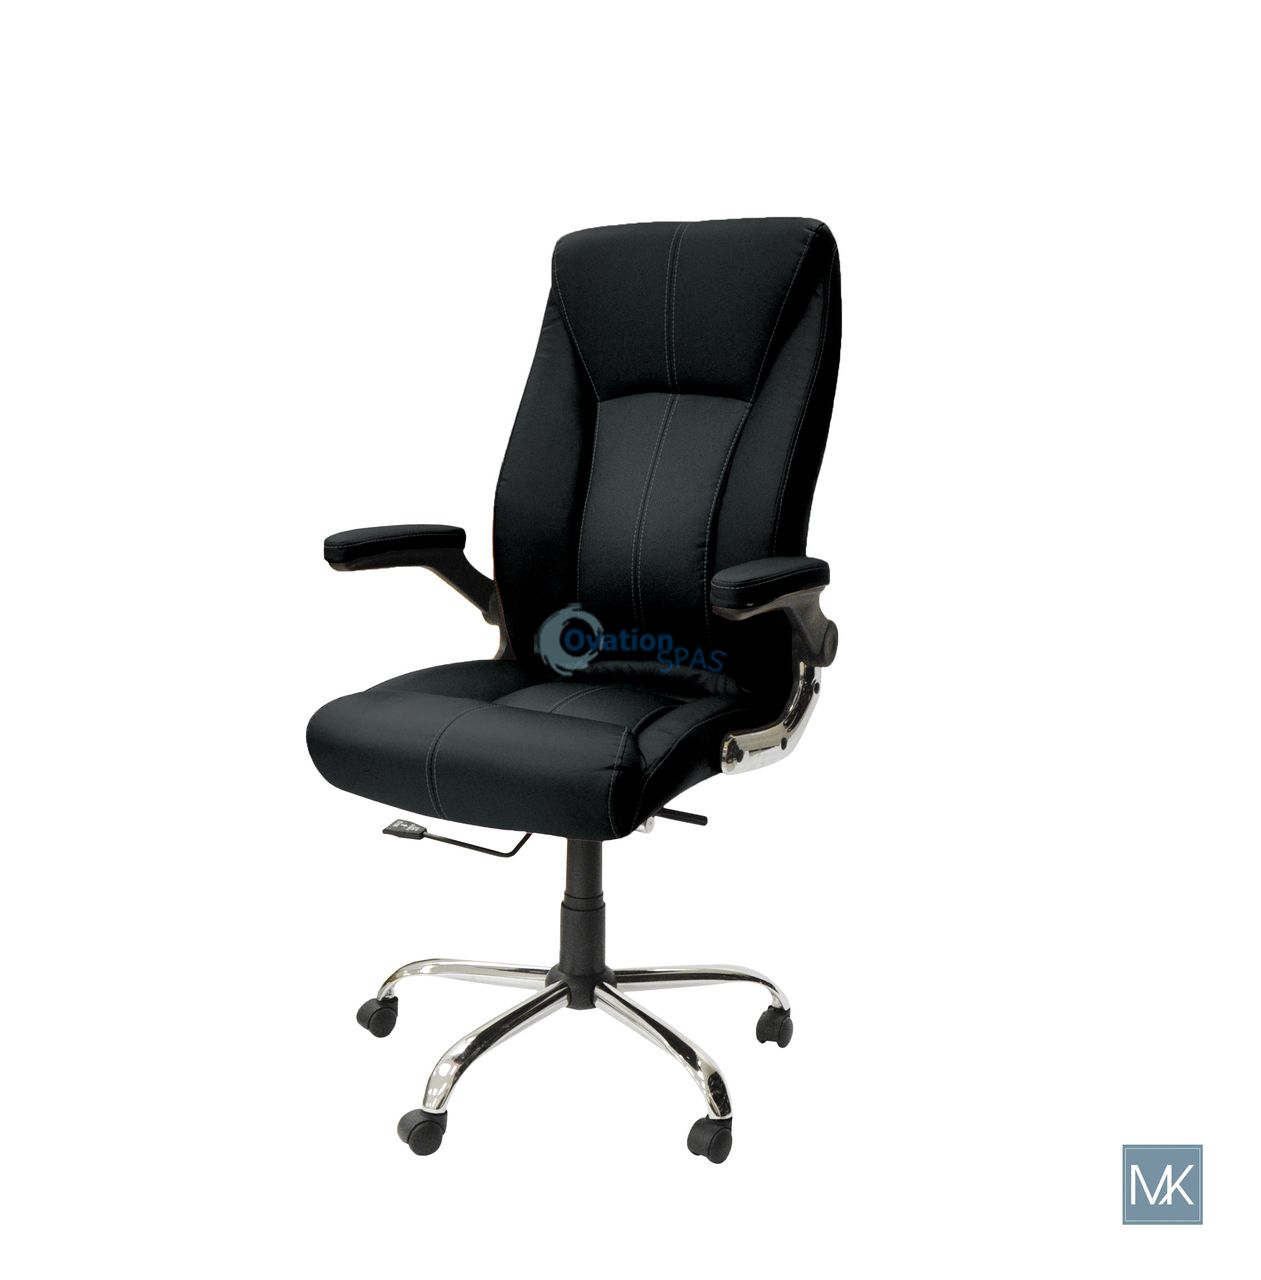 Avion Customer Chair (Black)